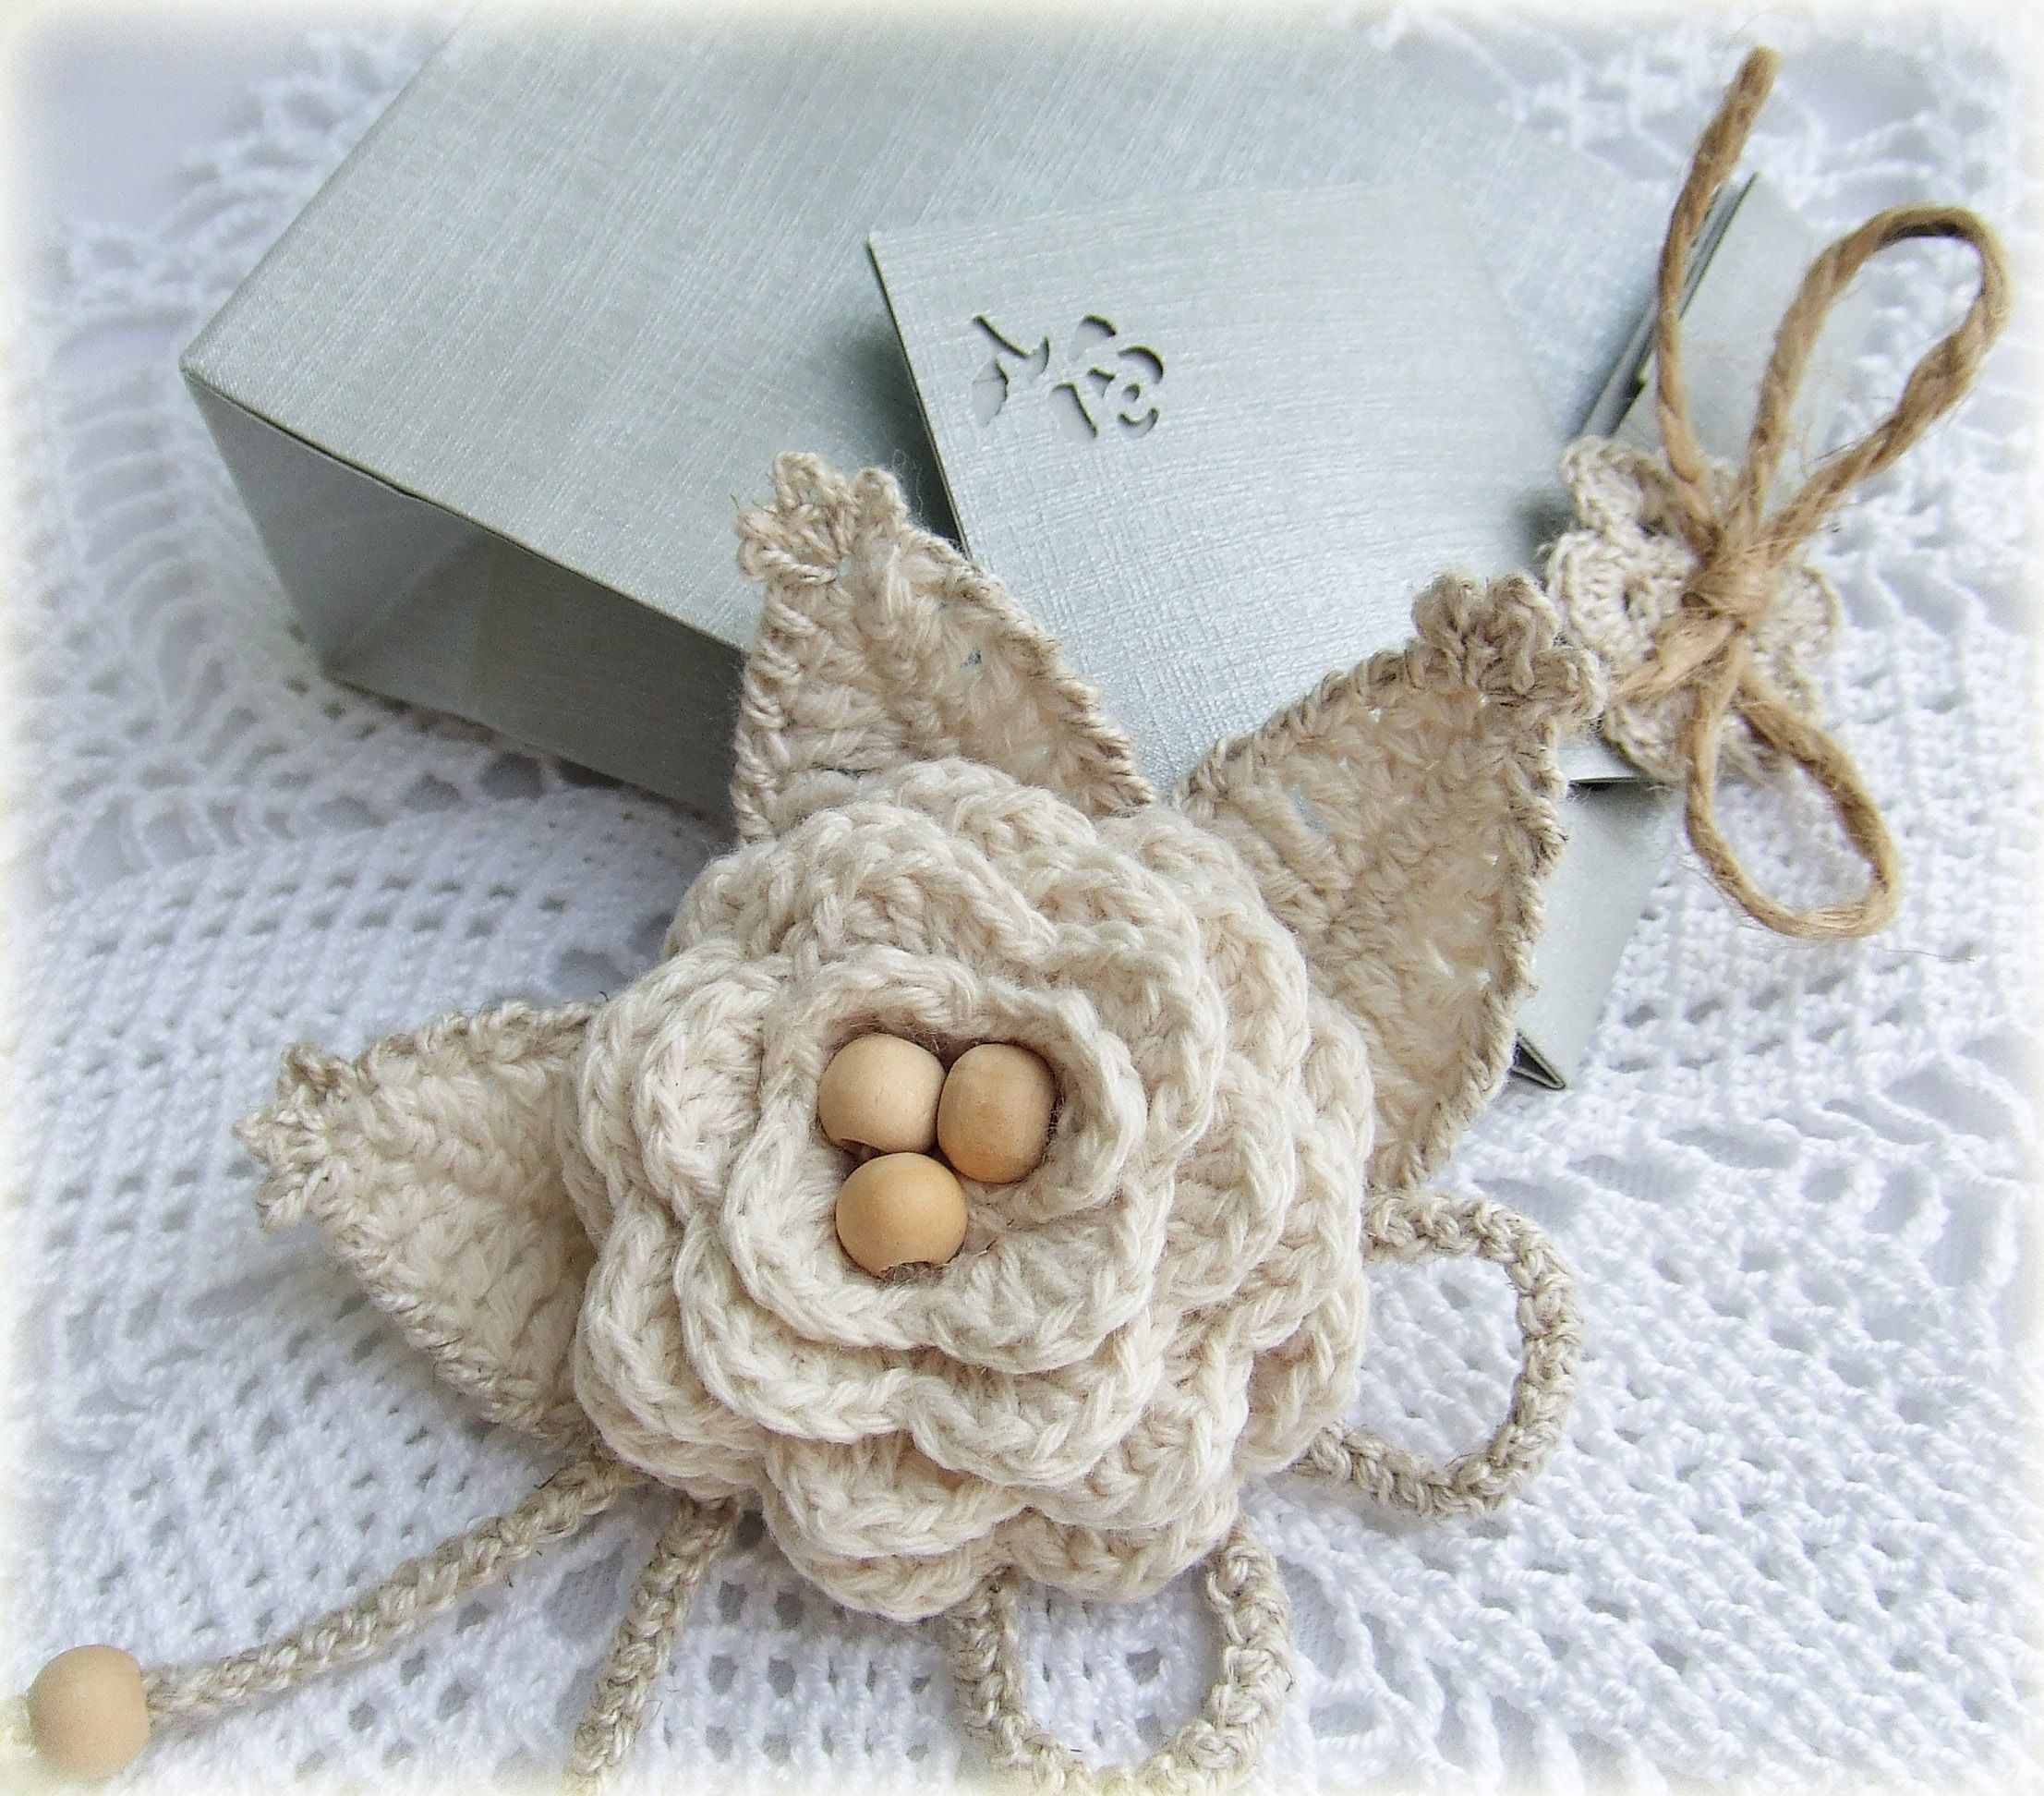 rose pin broach beige flax knitting